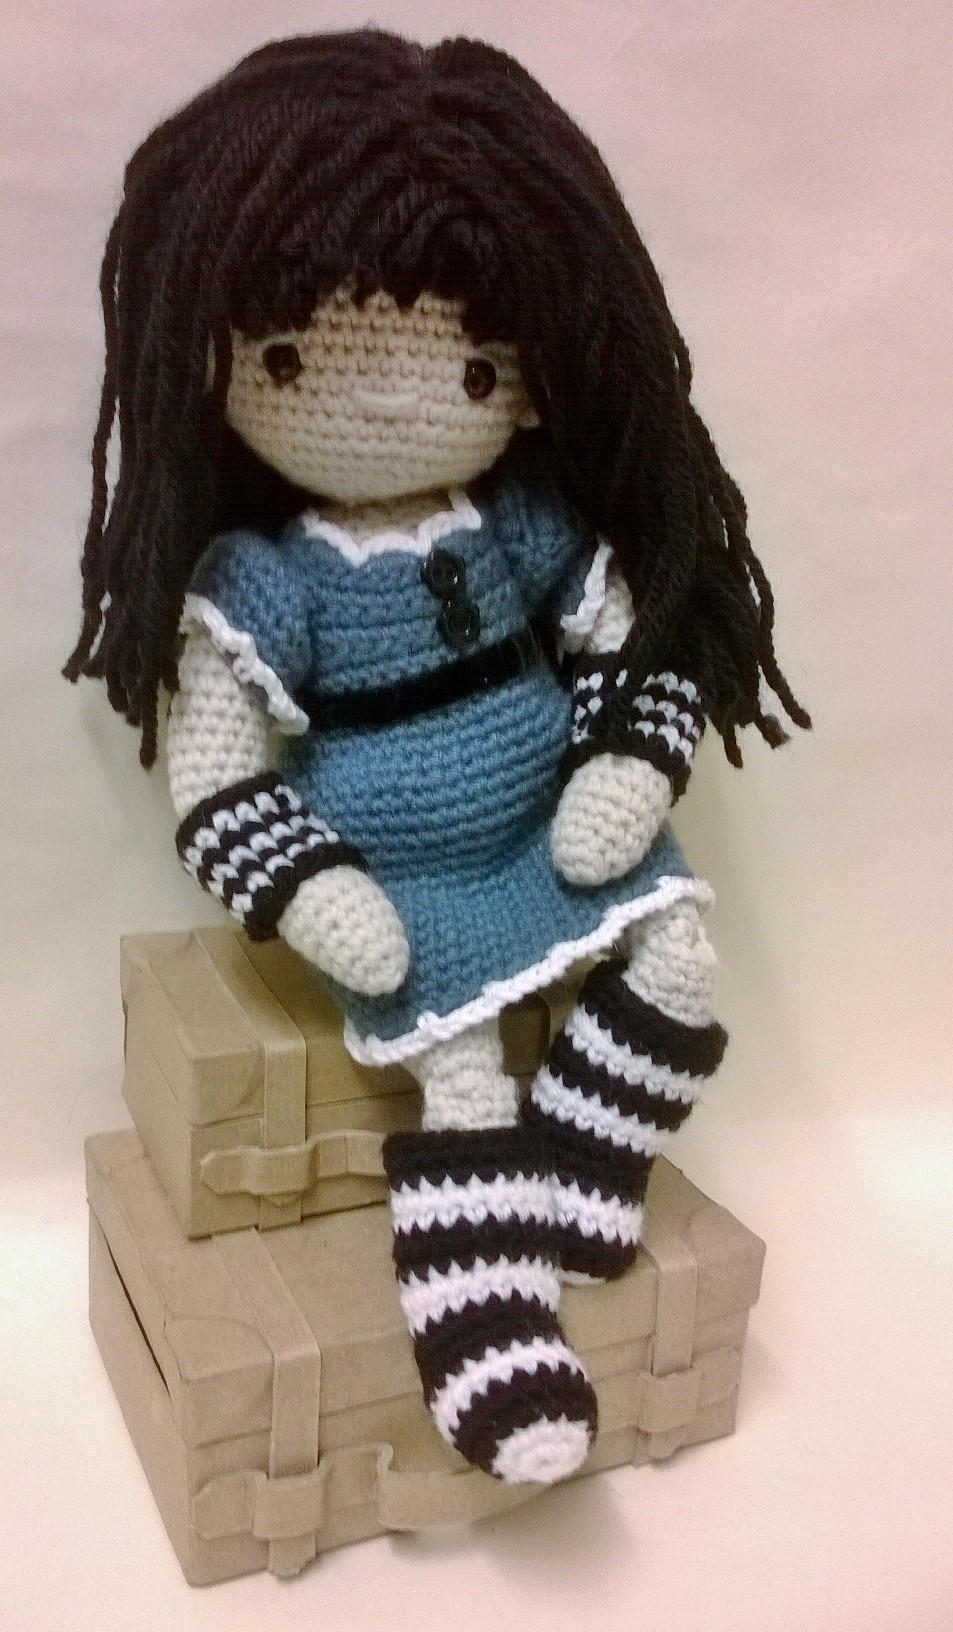 Crocheting Dolls : ... You?ll need to buy the My First Crochet Doll pattern to make her